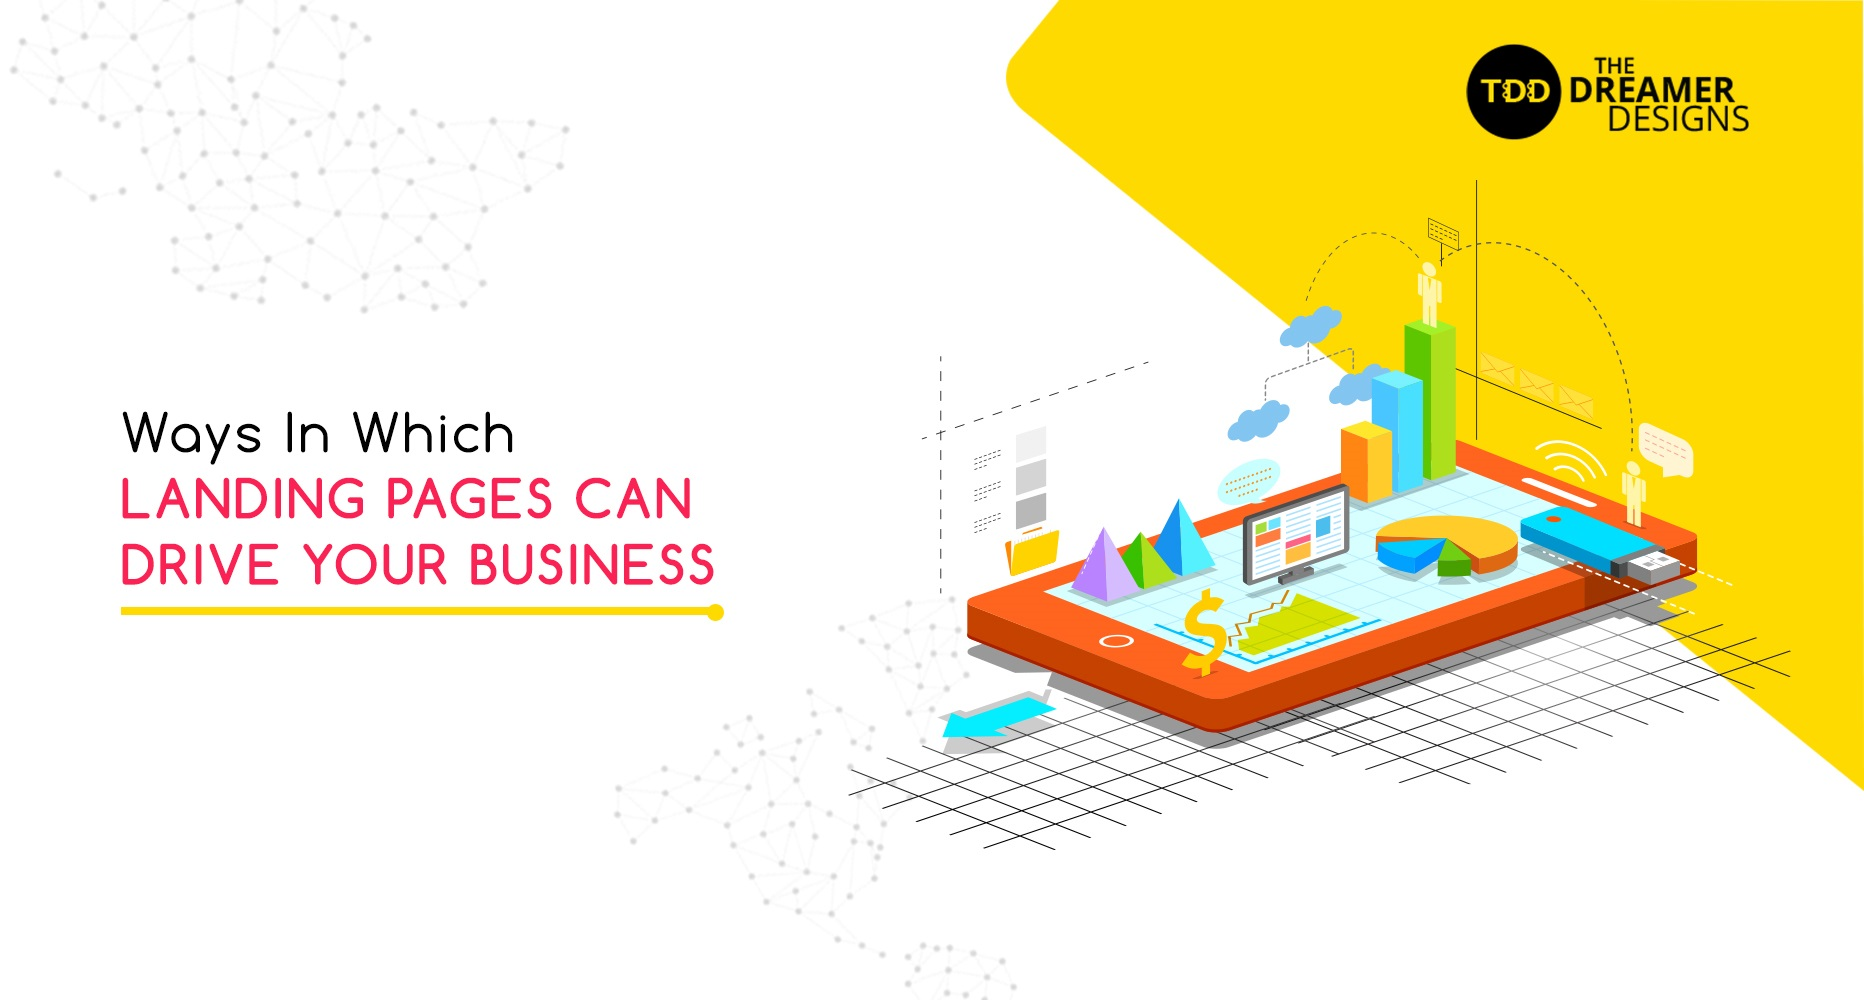 Ways in Which Landing Pages Can Drive Your Business